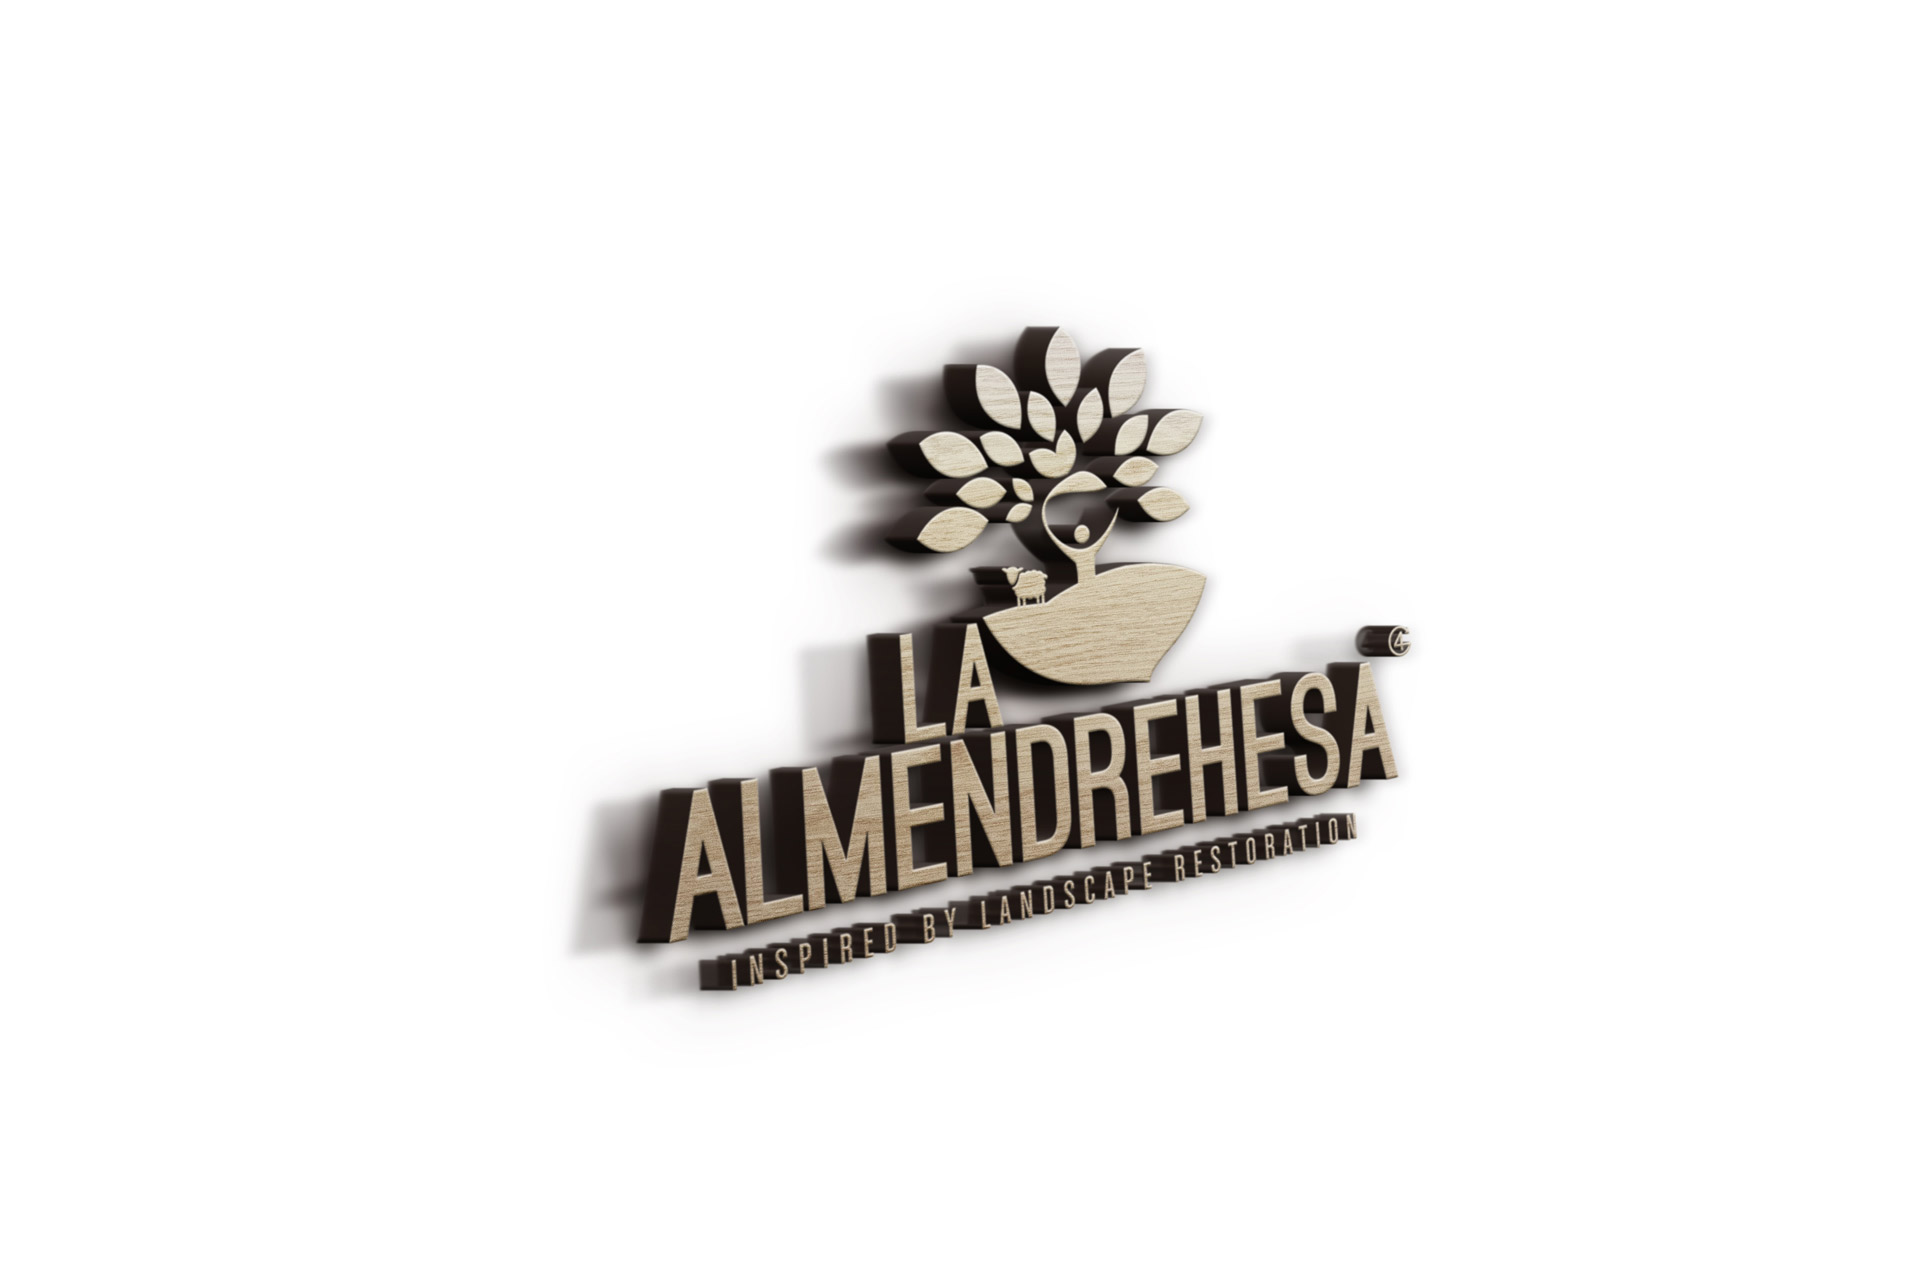 almendrehesa-logotipo